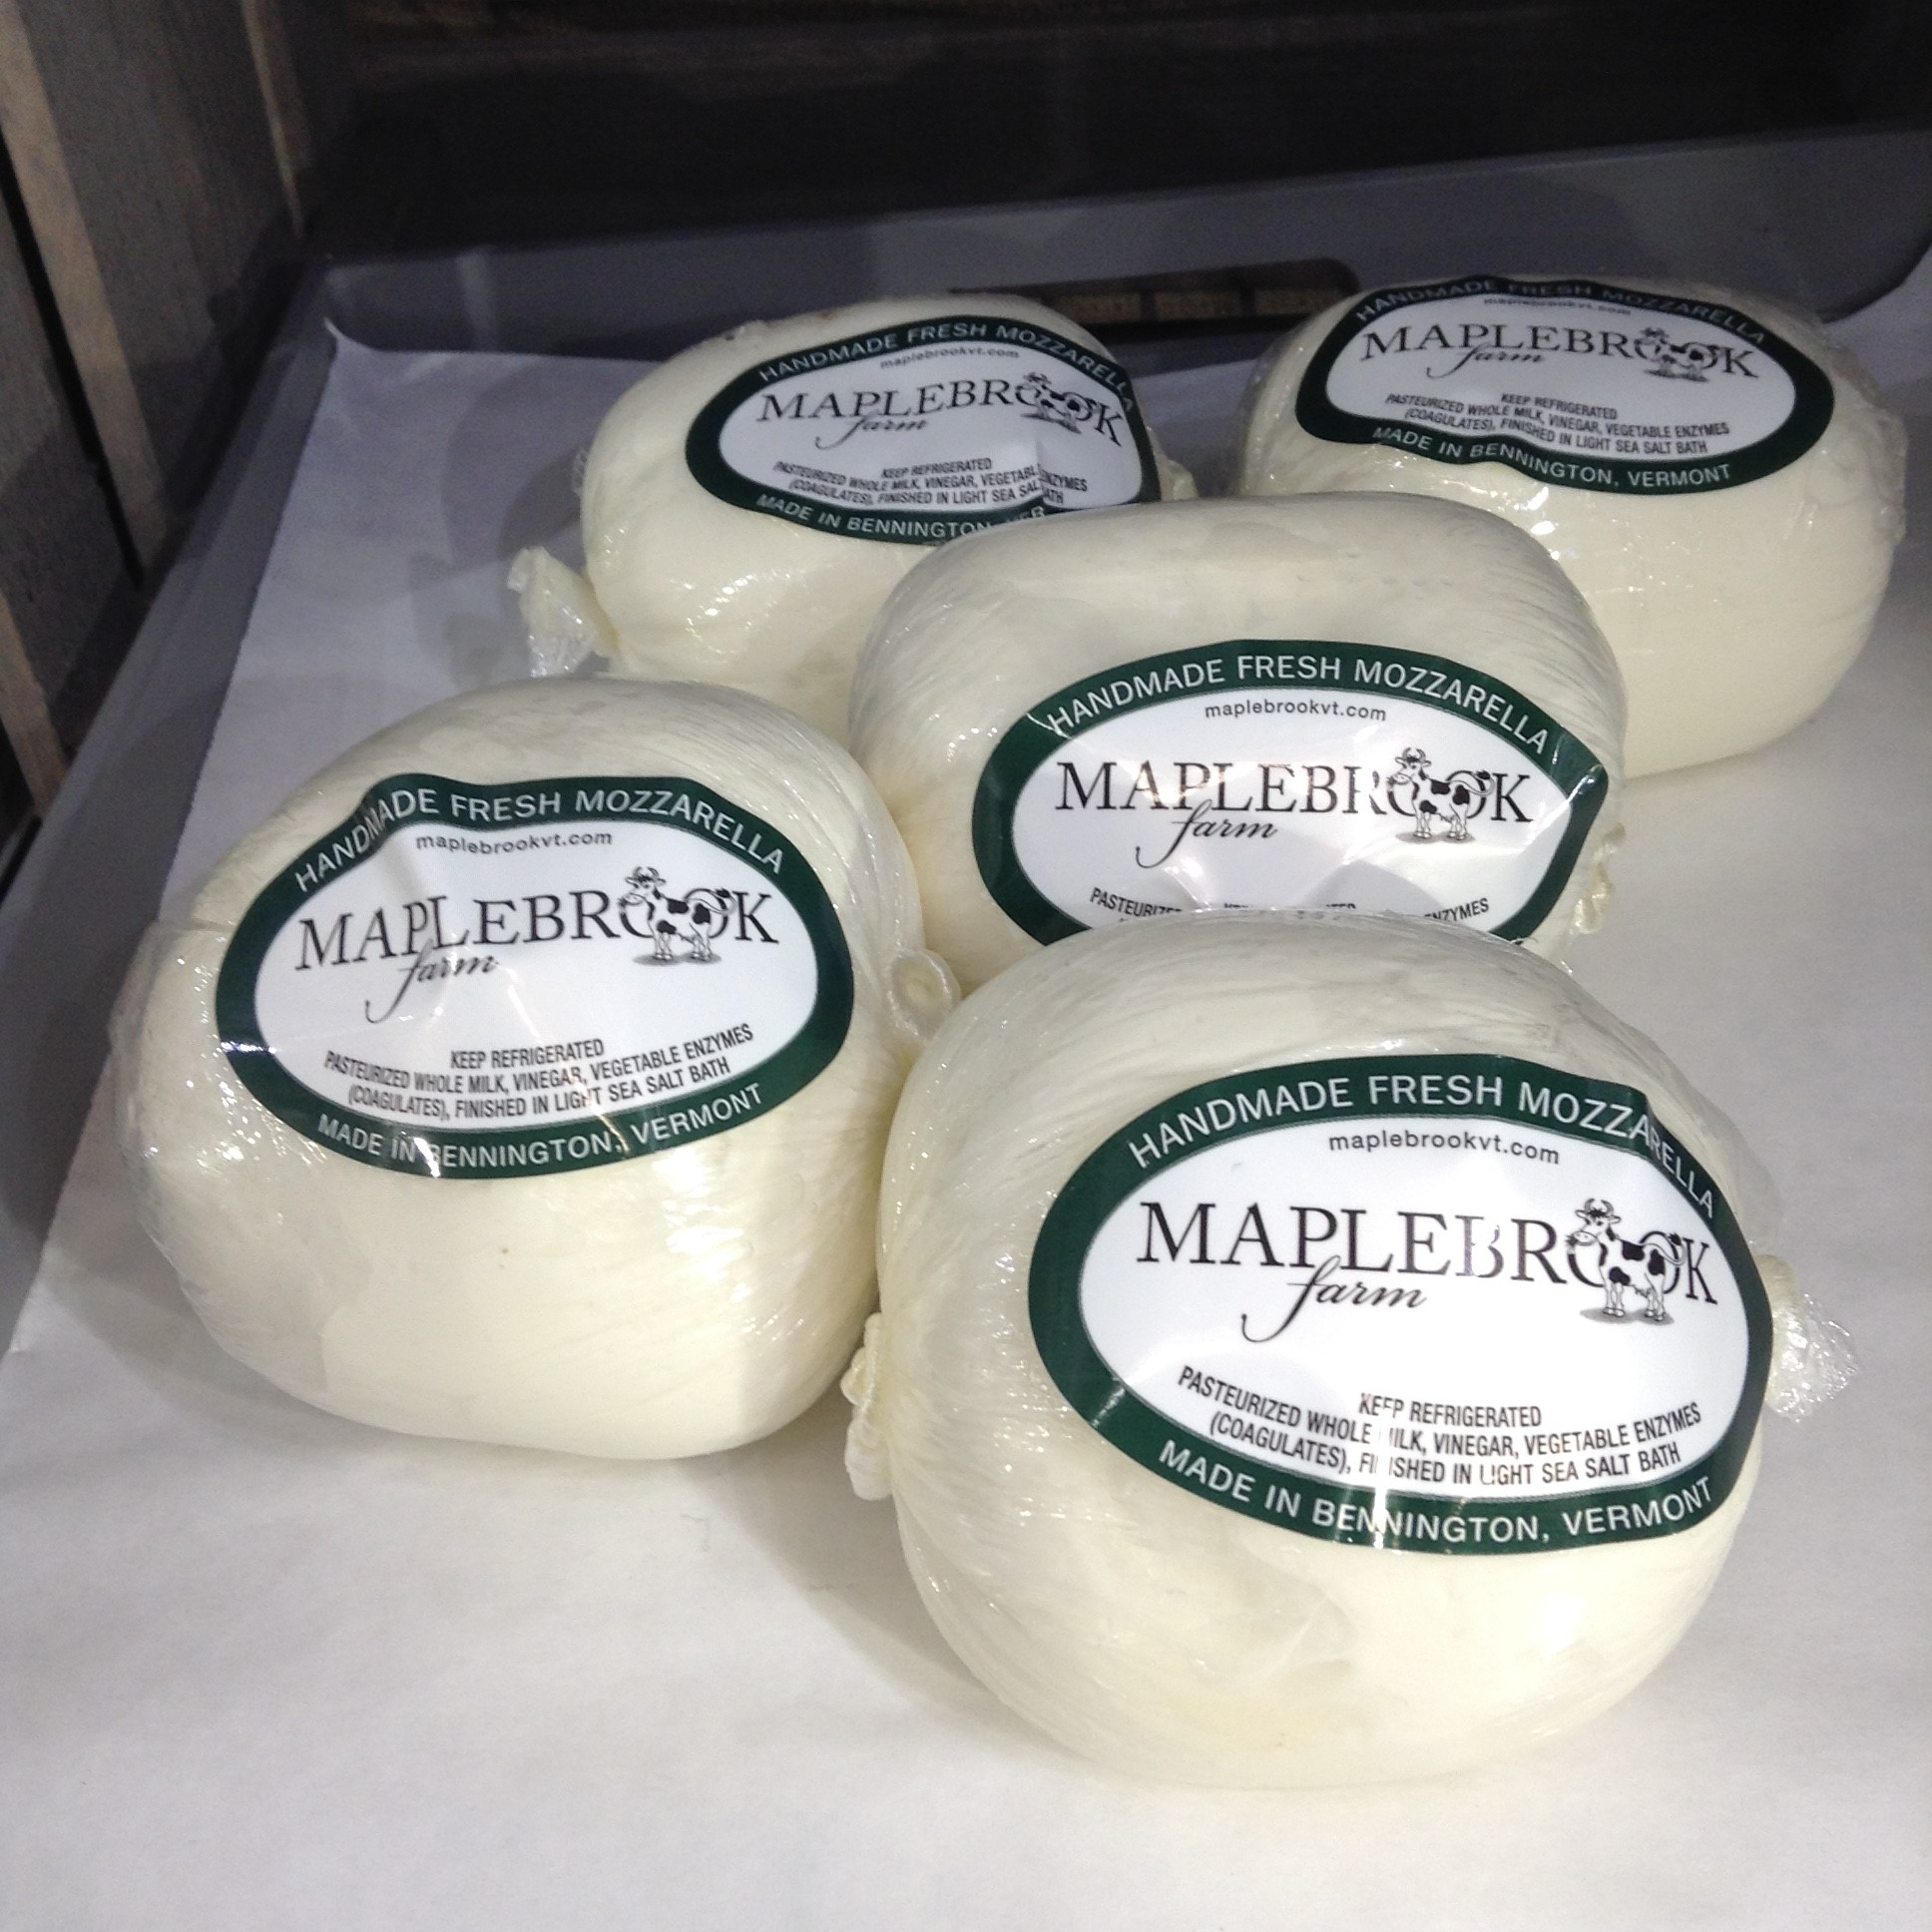 Maplebrook Farm Handmade Fresh Mozzarella